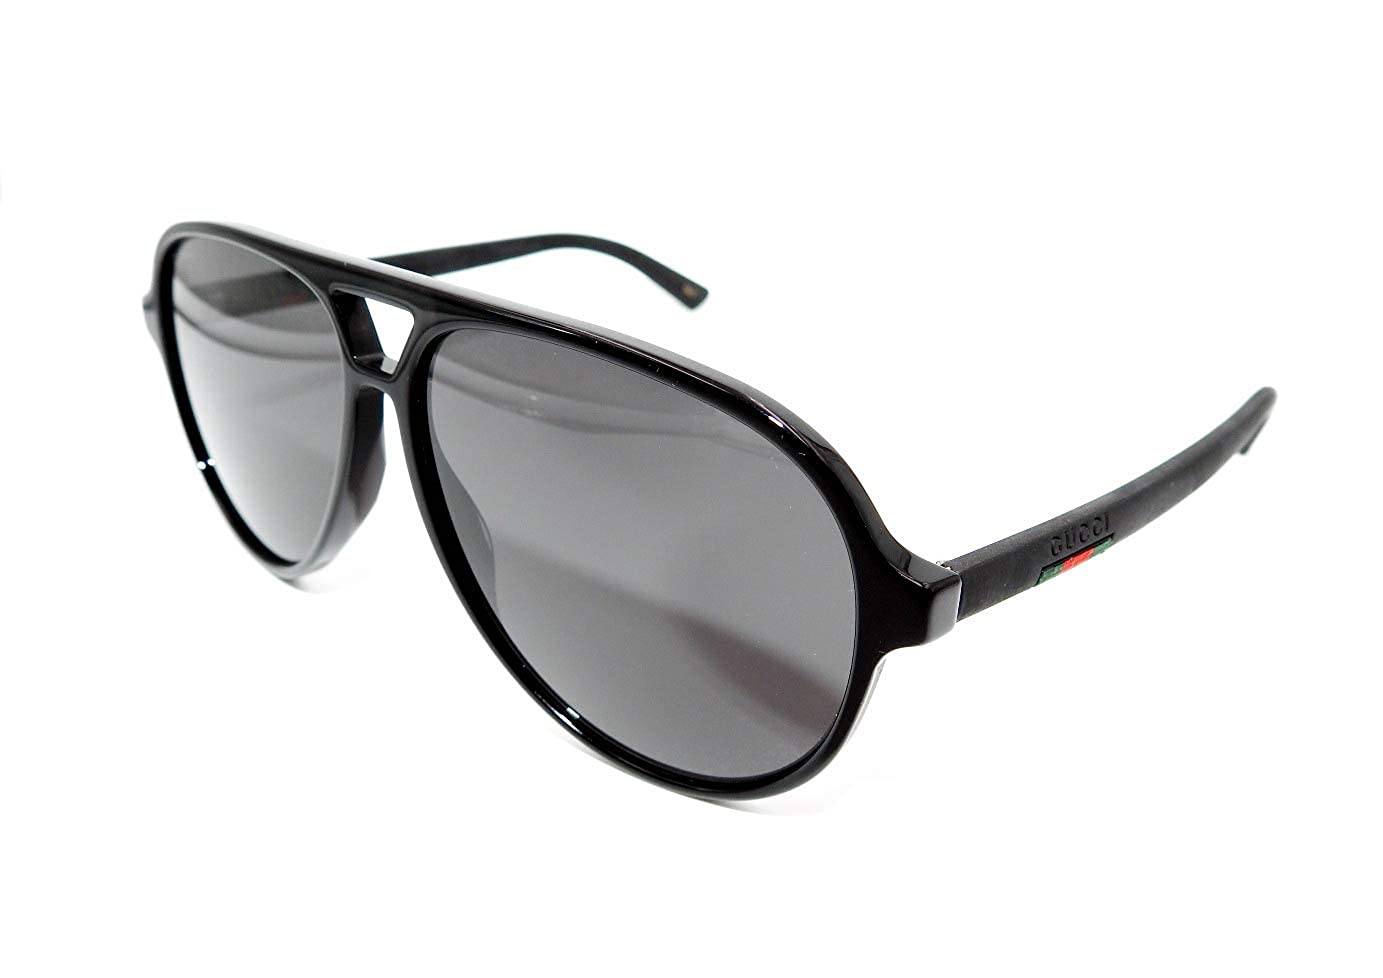 db9795c4ae2 Amazon.com  Authentic GUCCI Black Pilot Sunglasses GG0423S - 007NEW   Clothing